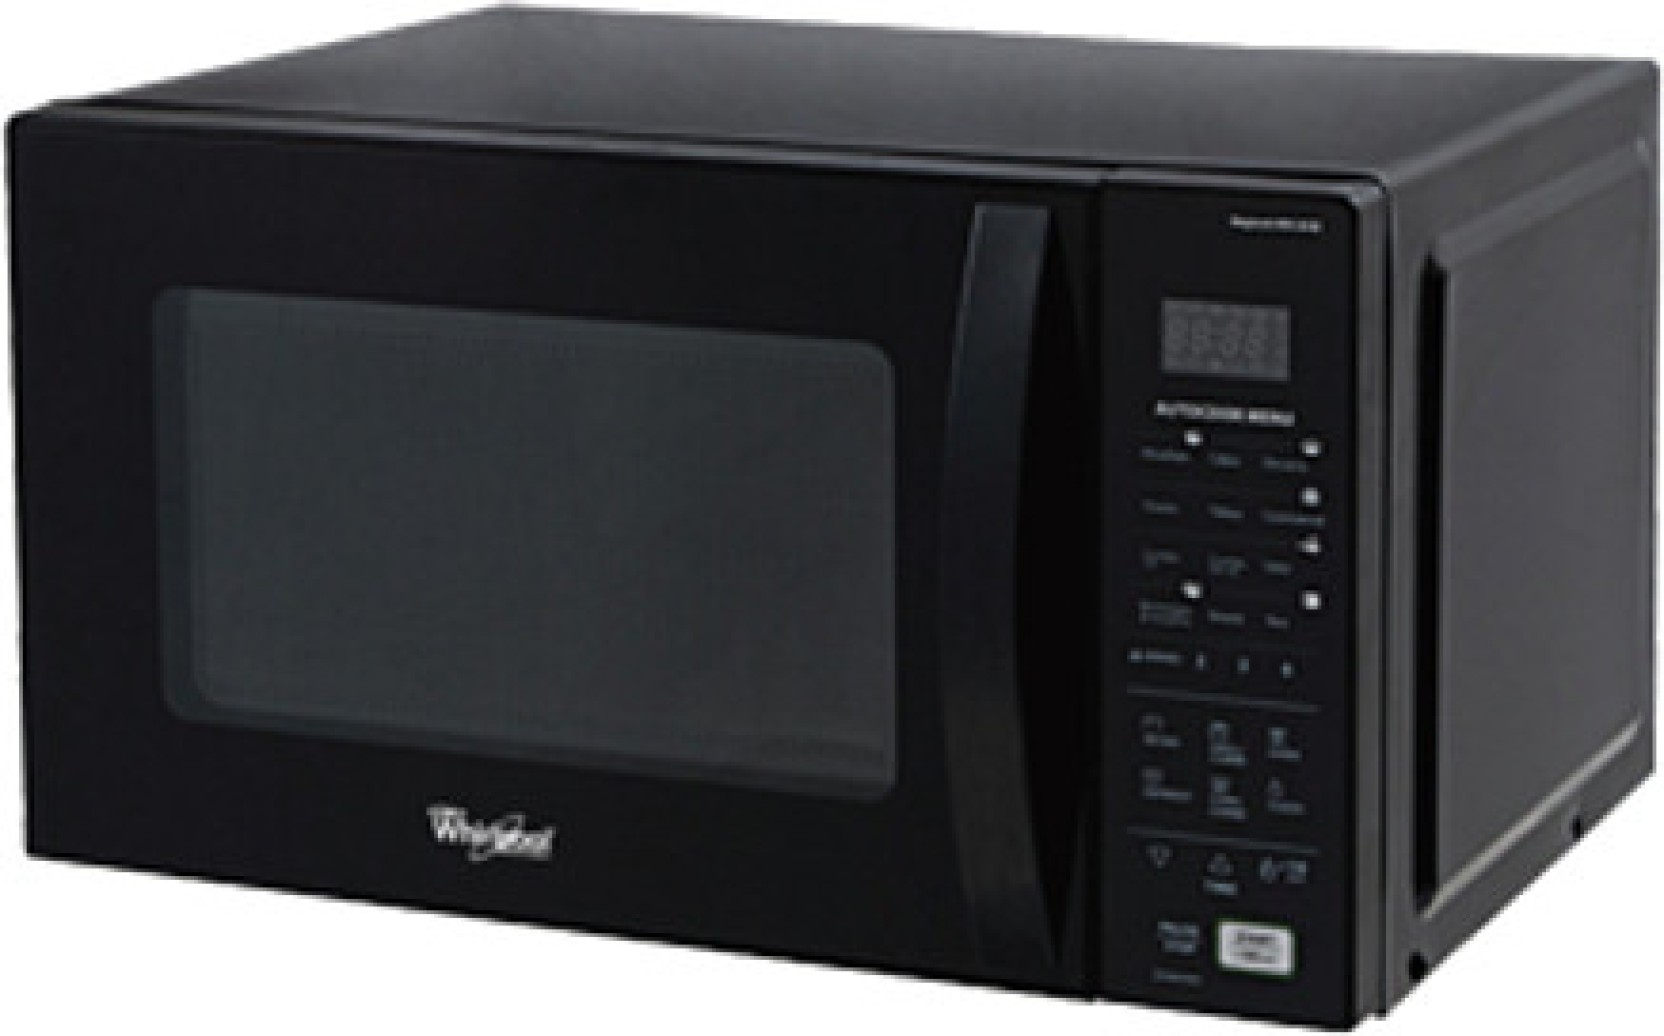 Whirlpool 20 L Convection Microwave Oven Wishlist